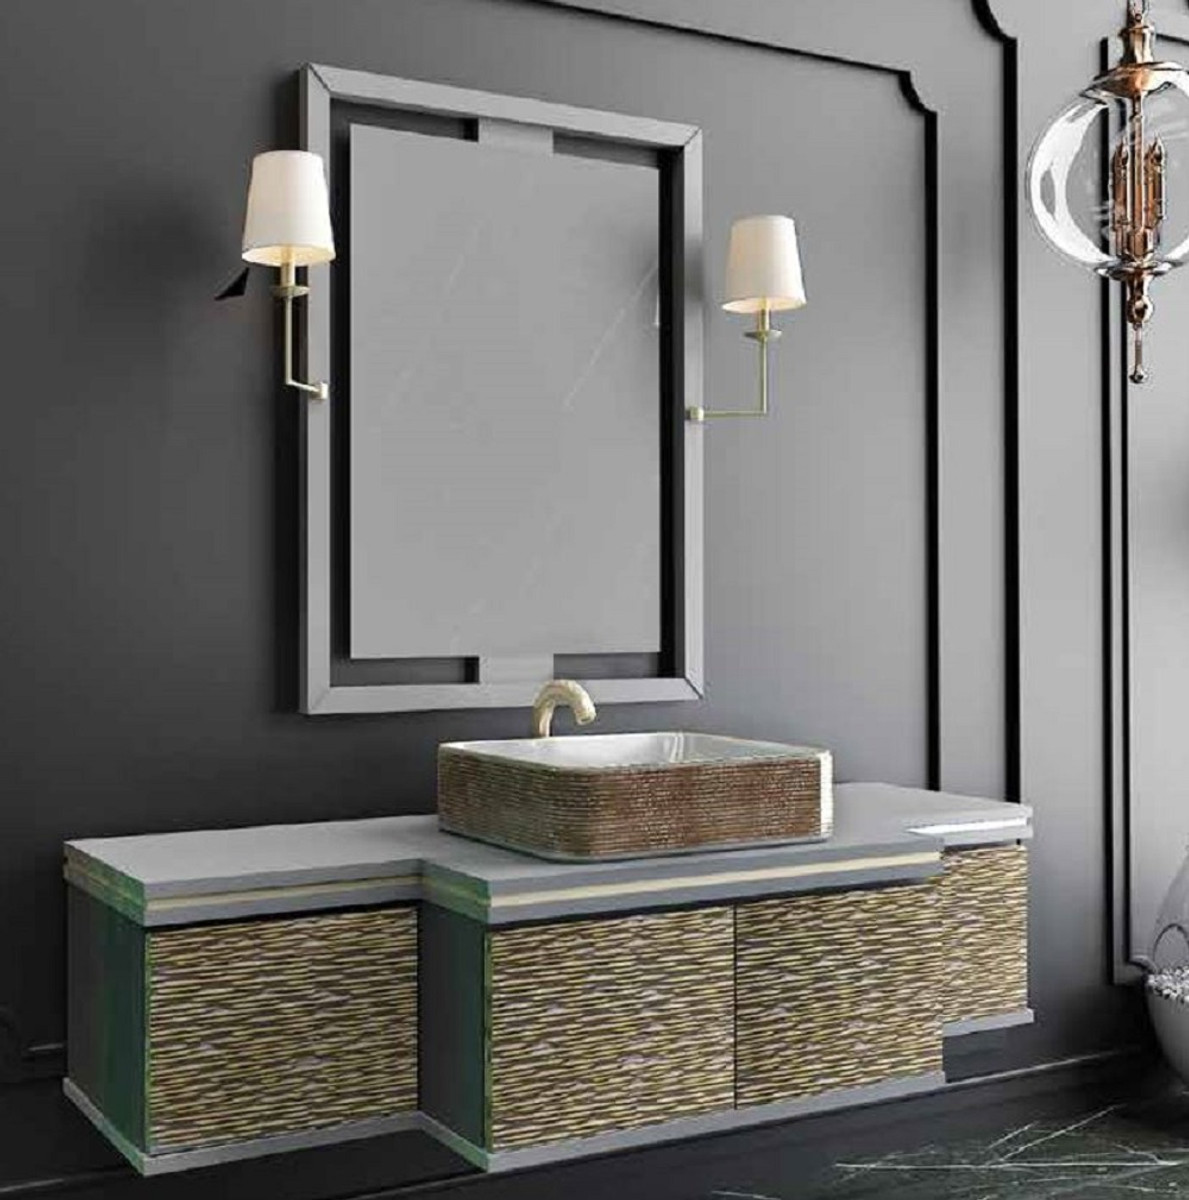 Casa Padrino Luxury Bathroom Set Gray Gold Black 1 Vanity Unit With 4 Doors And 1 Sink And 1 Wall Mirror With 2 Wall Lamps Luxury Collection Free Standing Bathtubs Bathroom Furniture Bathroom Furniture